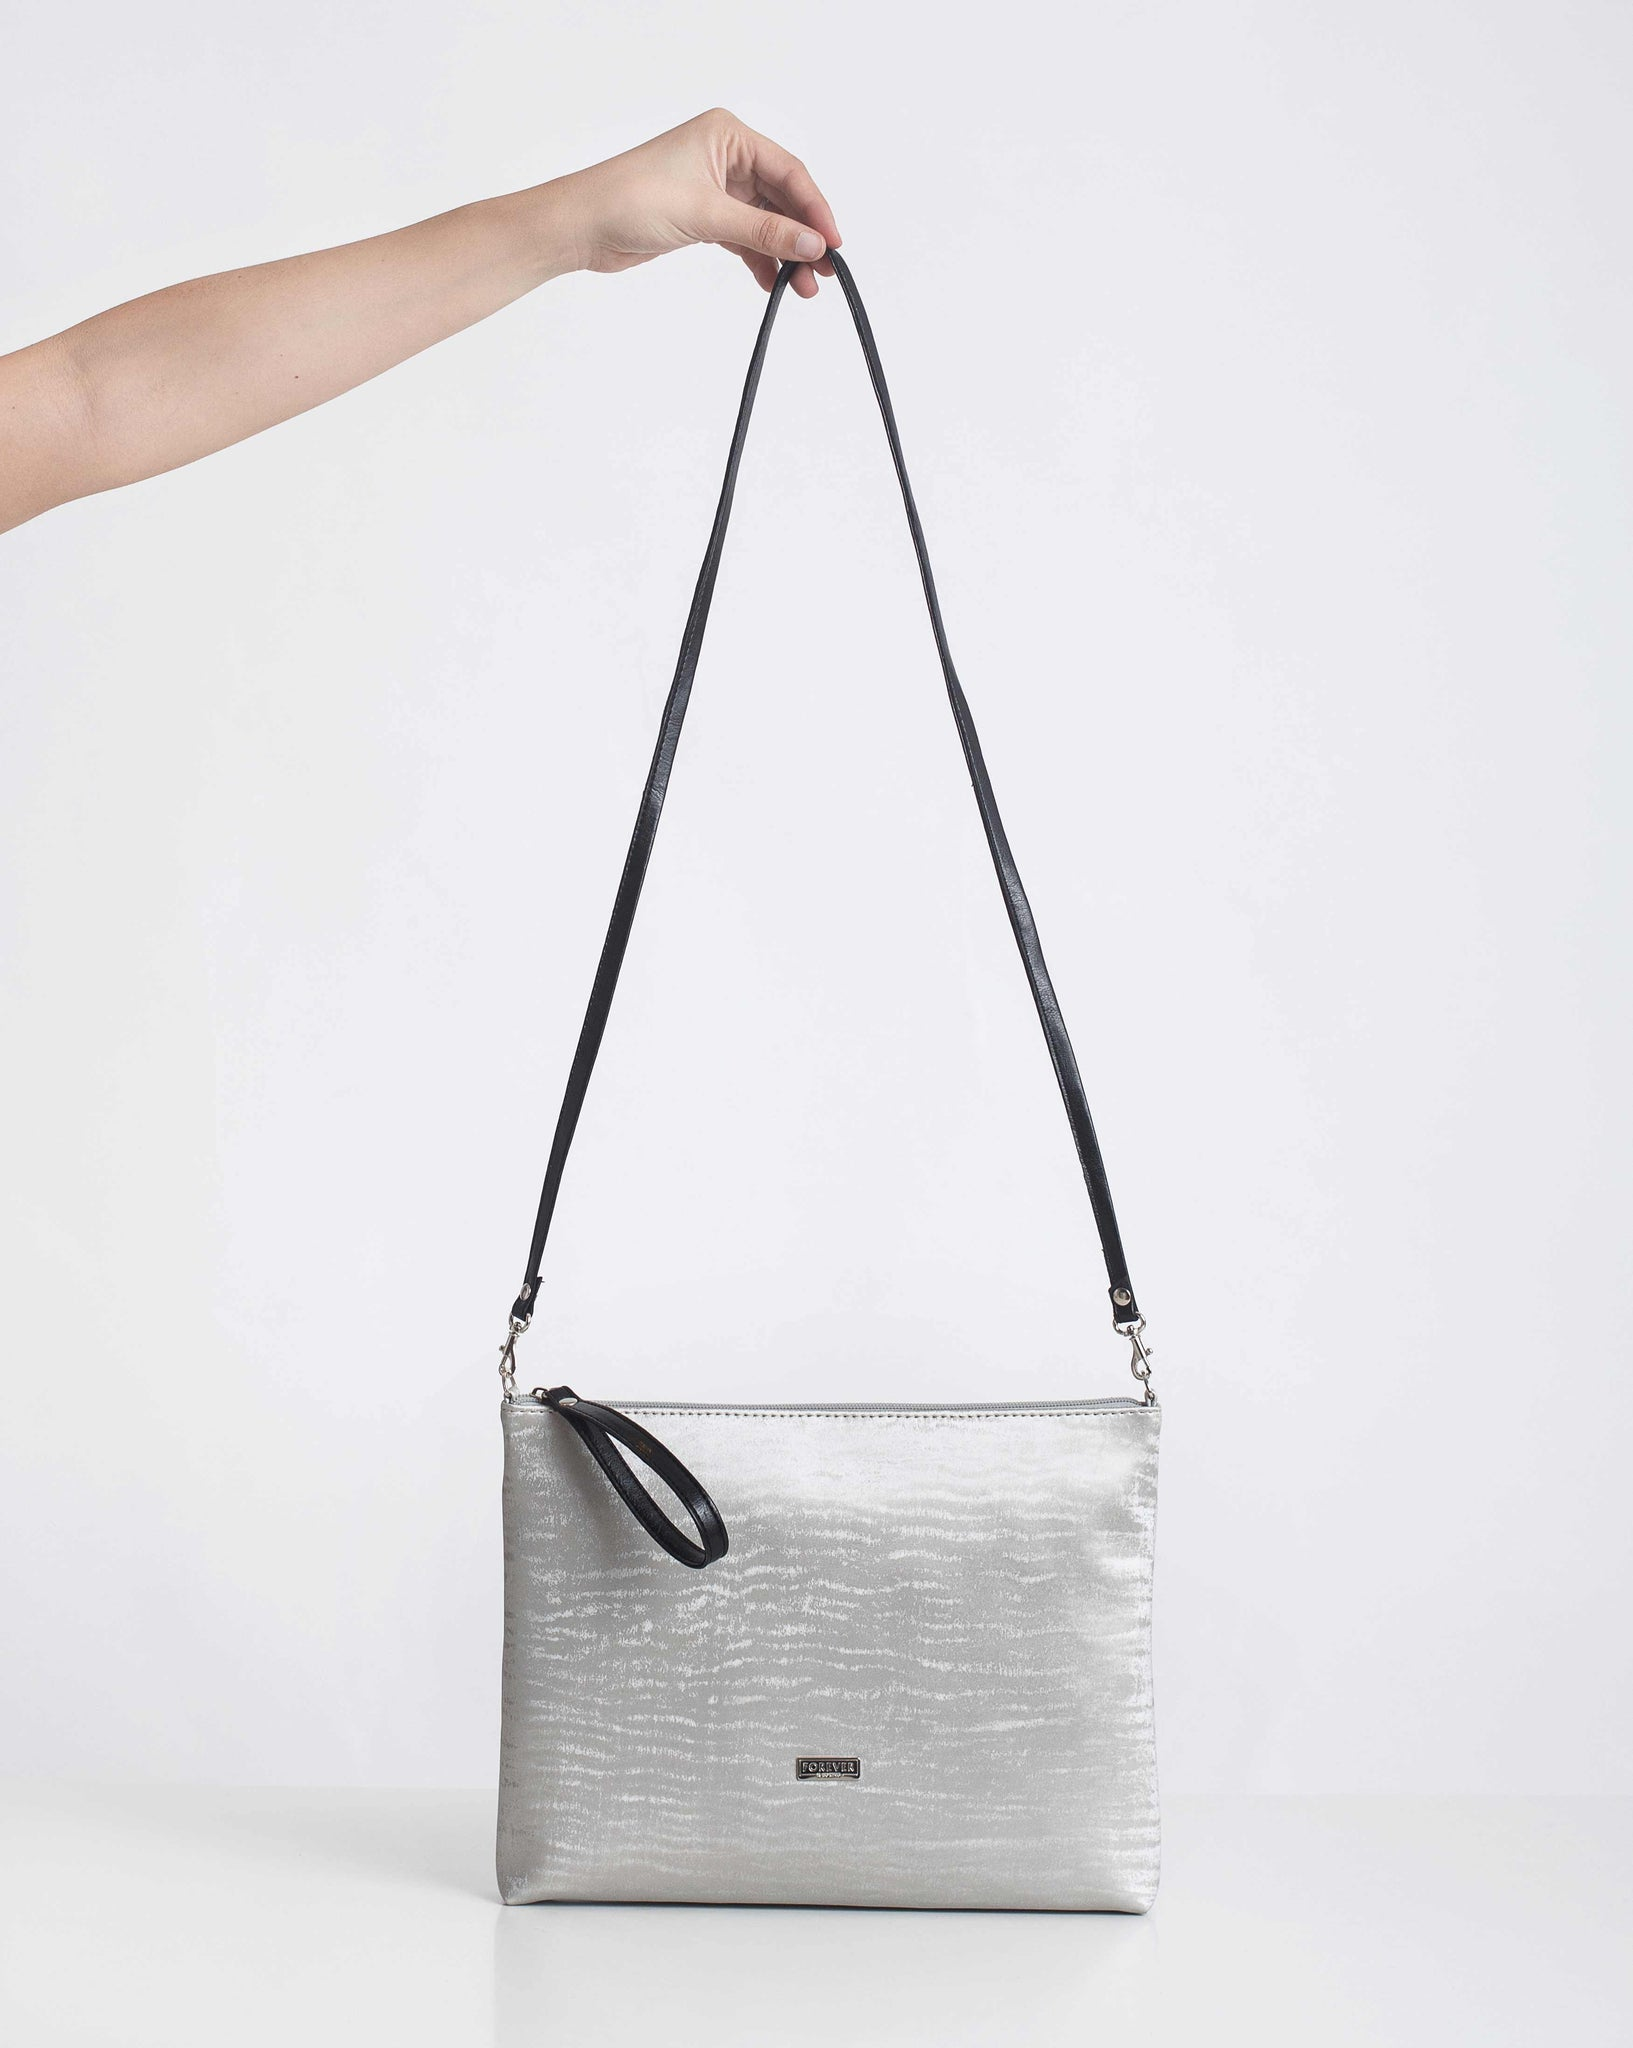 RIDE TOP GY CROSSBODY BAG